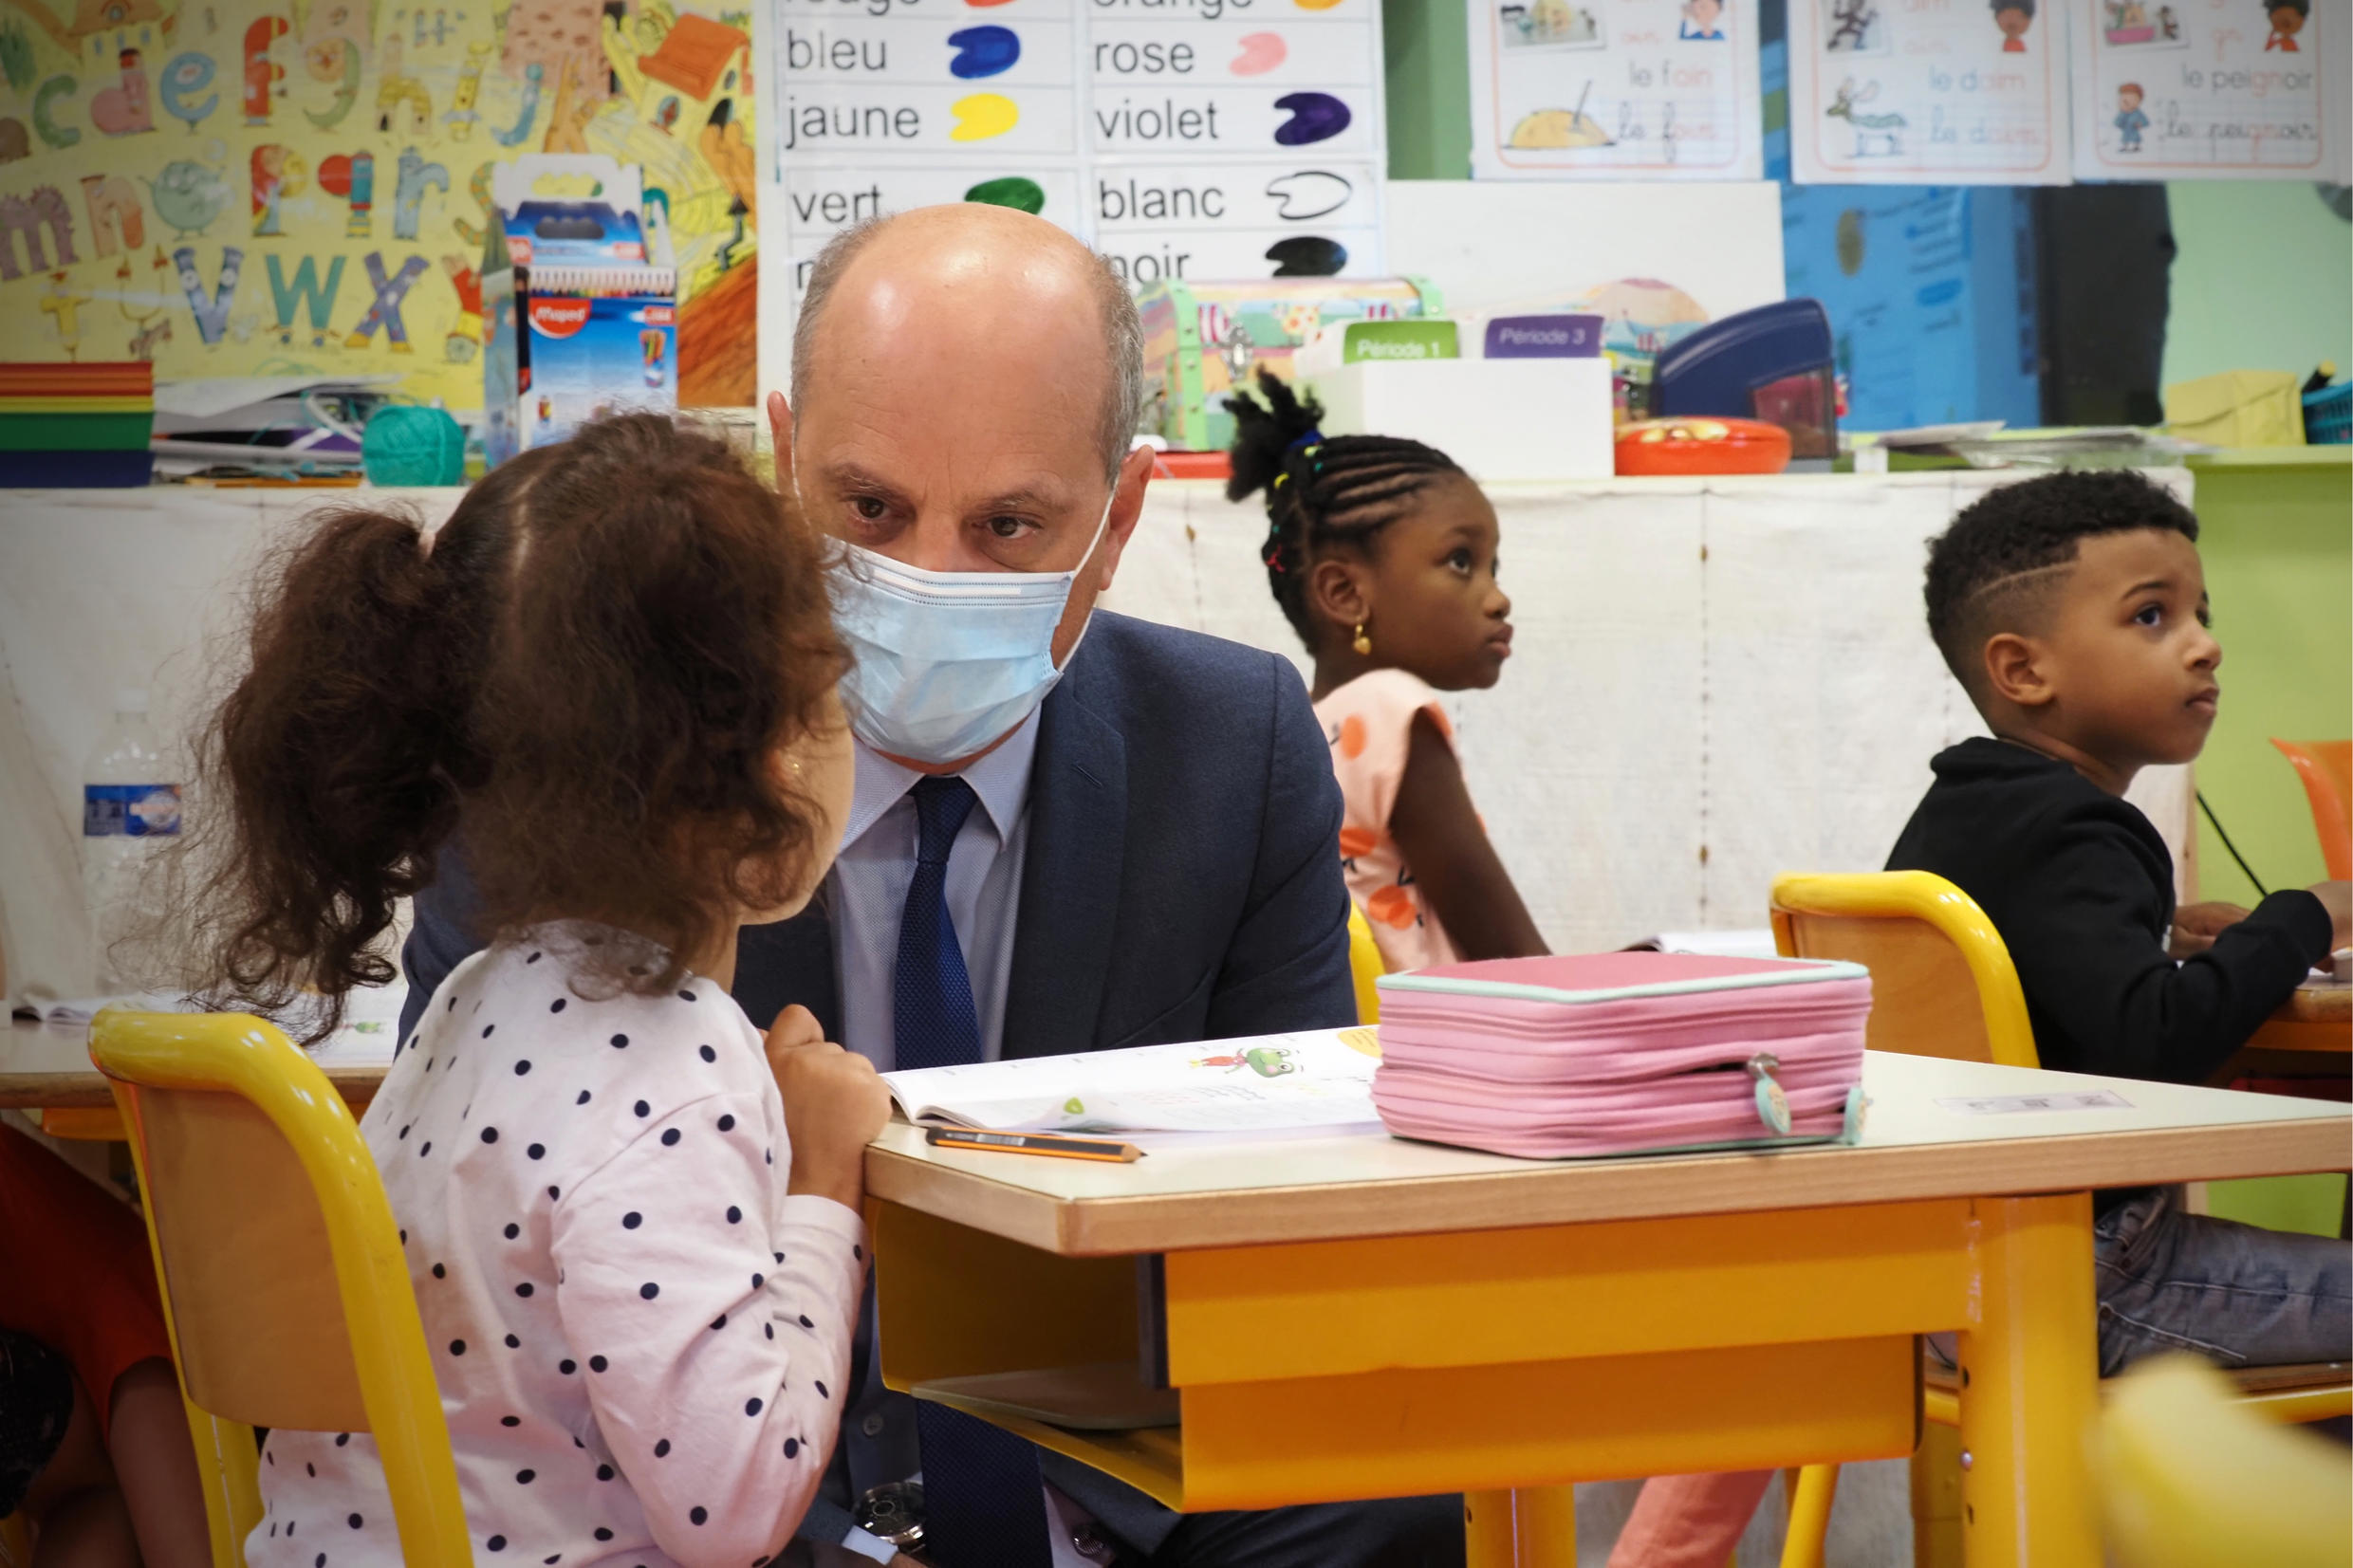 french_minister_education_rentree_scolaire_chateauroux_coronavirus